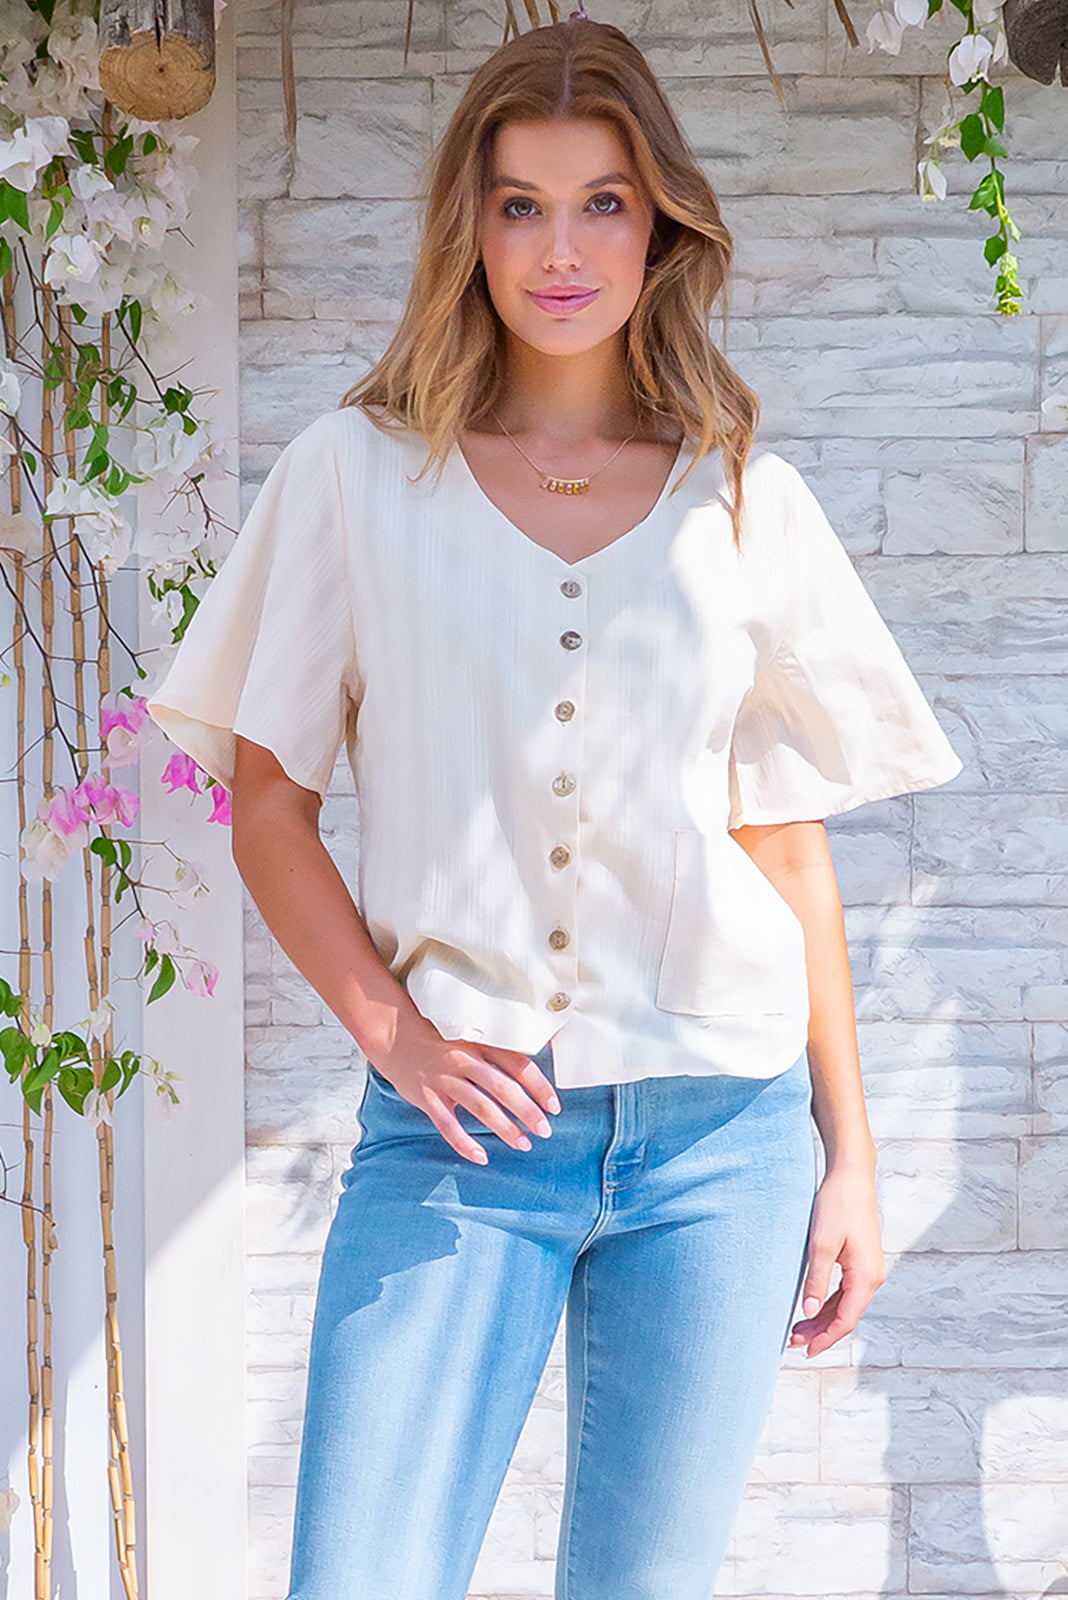 Indigo Ecru Cream Top, 100% cotton, bohemian summer style, scoop neckline, functional button front, short sleeves, single front pocket, warm cream base with subtle textured stripe pattern.